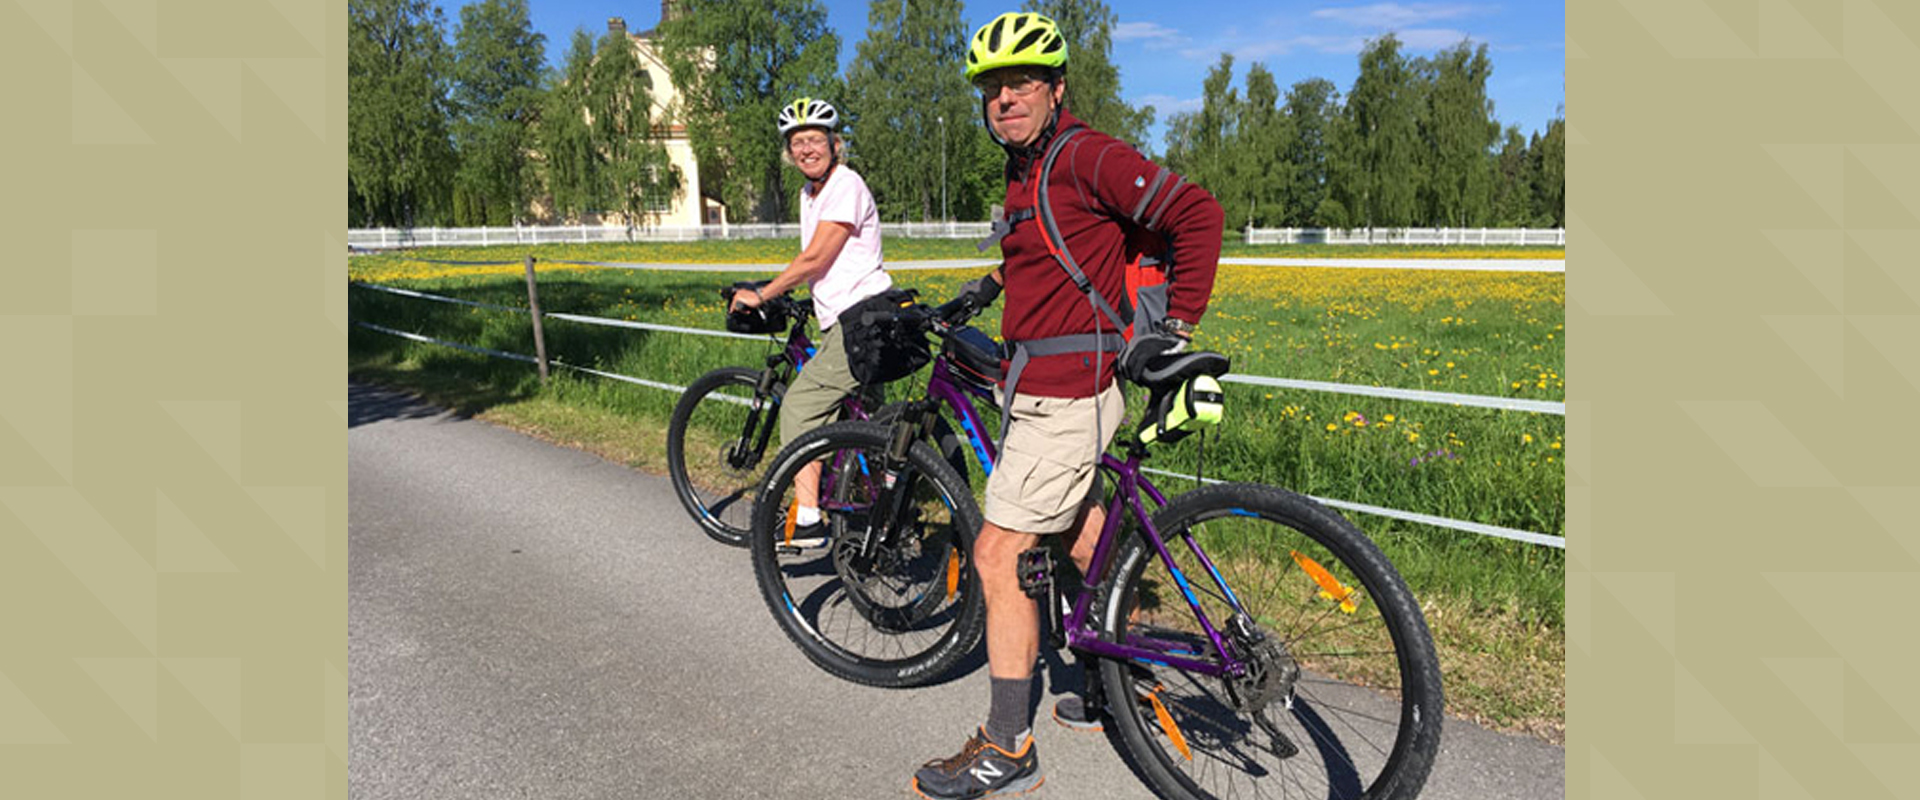 A woman and a man on bikes